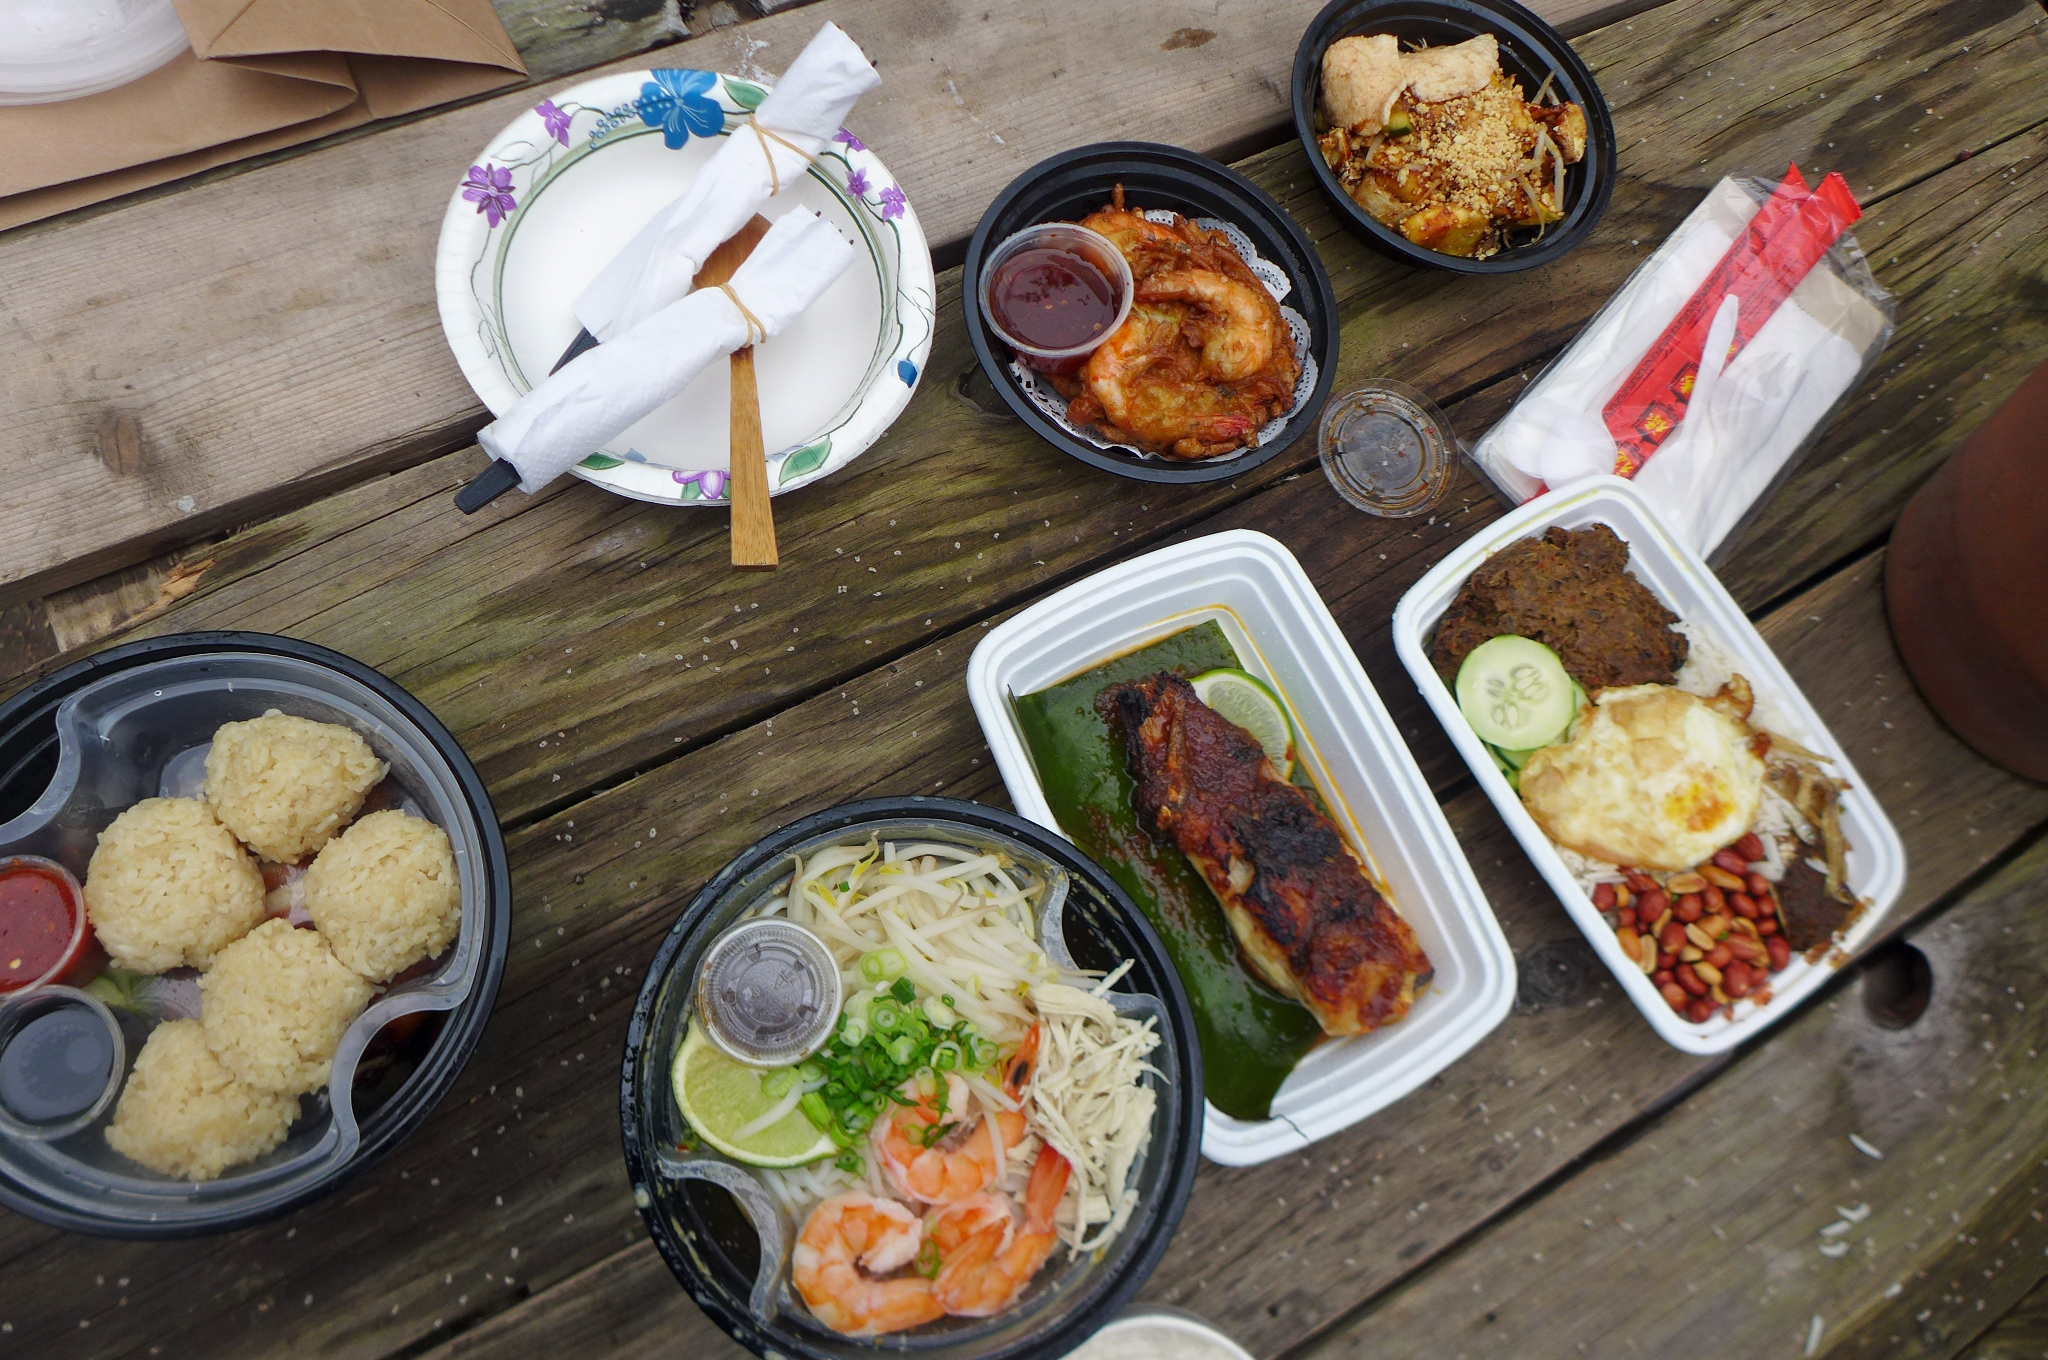 Several Malaysian dishes, including chicken and rice, shrimp fritters, and stingray, along with plates, plastic utensils, and  chopsticks on a wooden table outdoors.